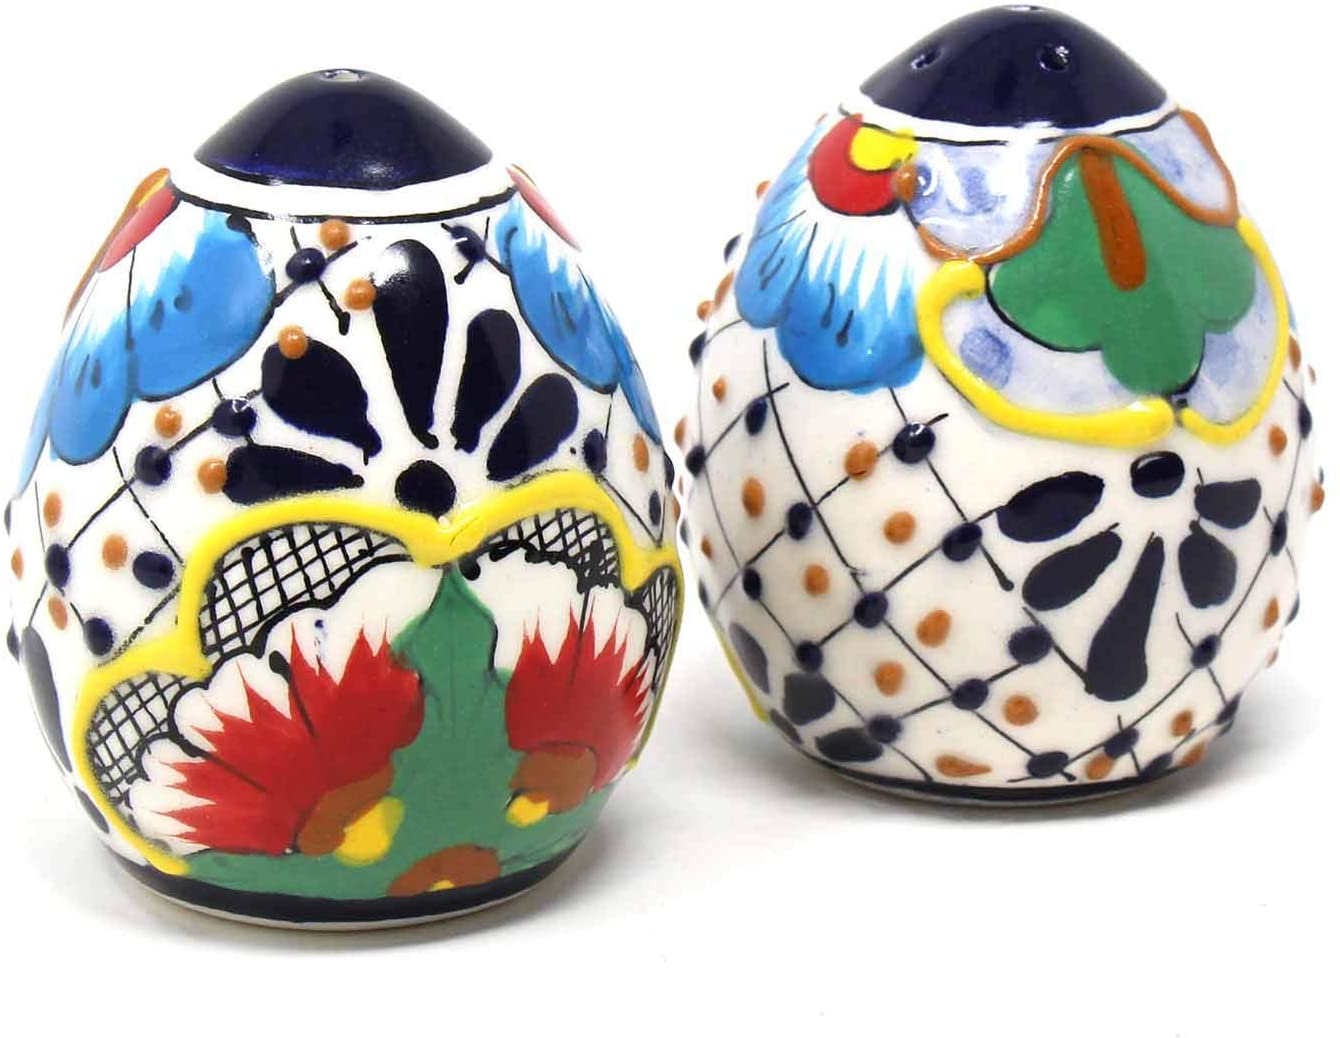 Global Crafts Encantada Handmade Hand-Painted Authentic Mexican Pottery, Salt and Pepper Shaker Set, Dots & Flowers (MC085D-K2)